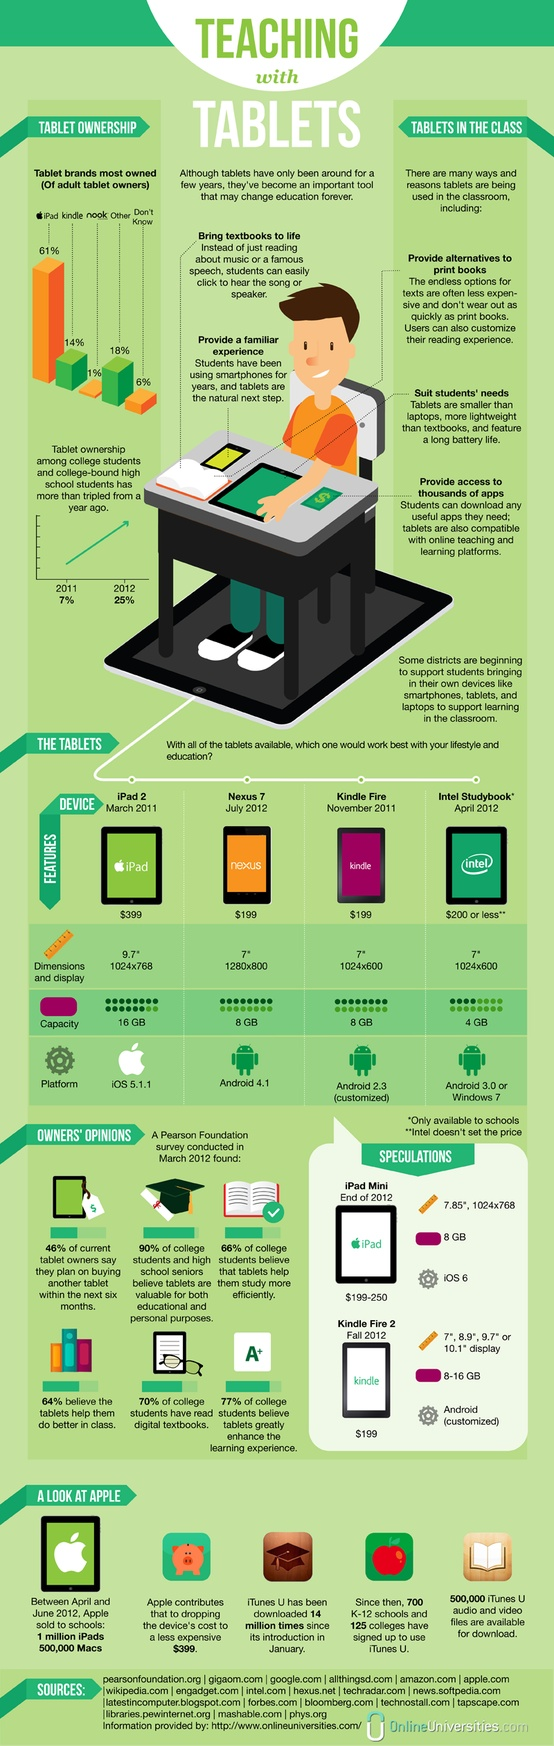 ipads in education infographic